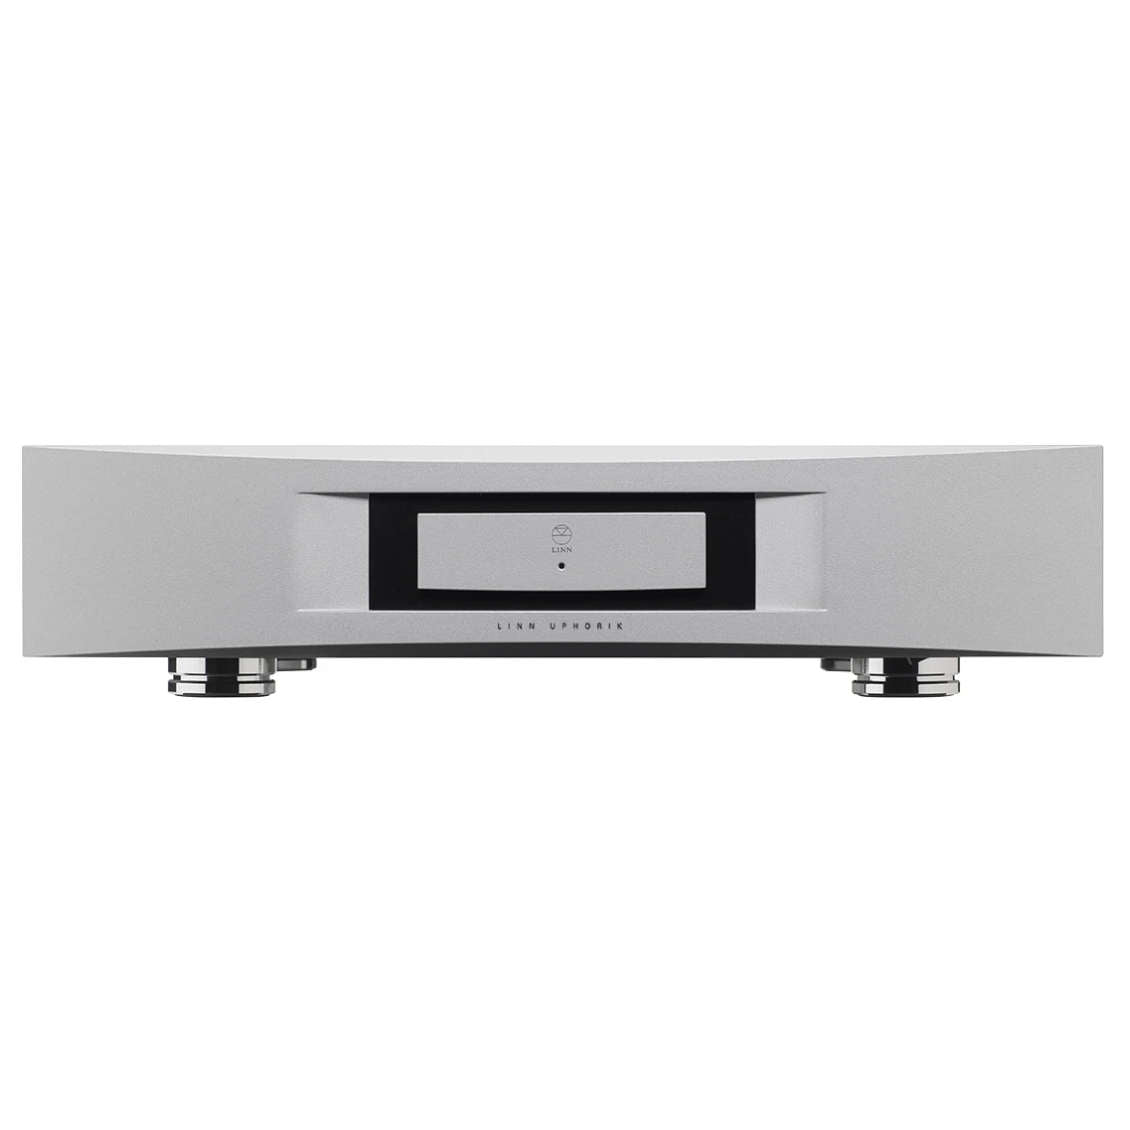 LP12 Uphorik MM/MC Phono Stage